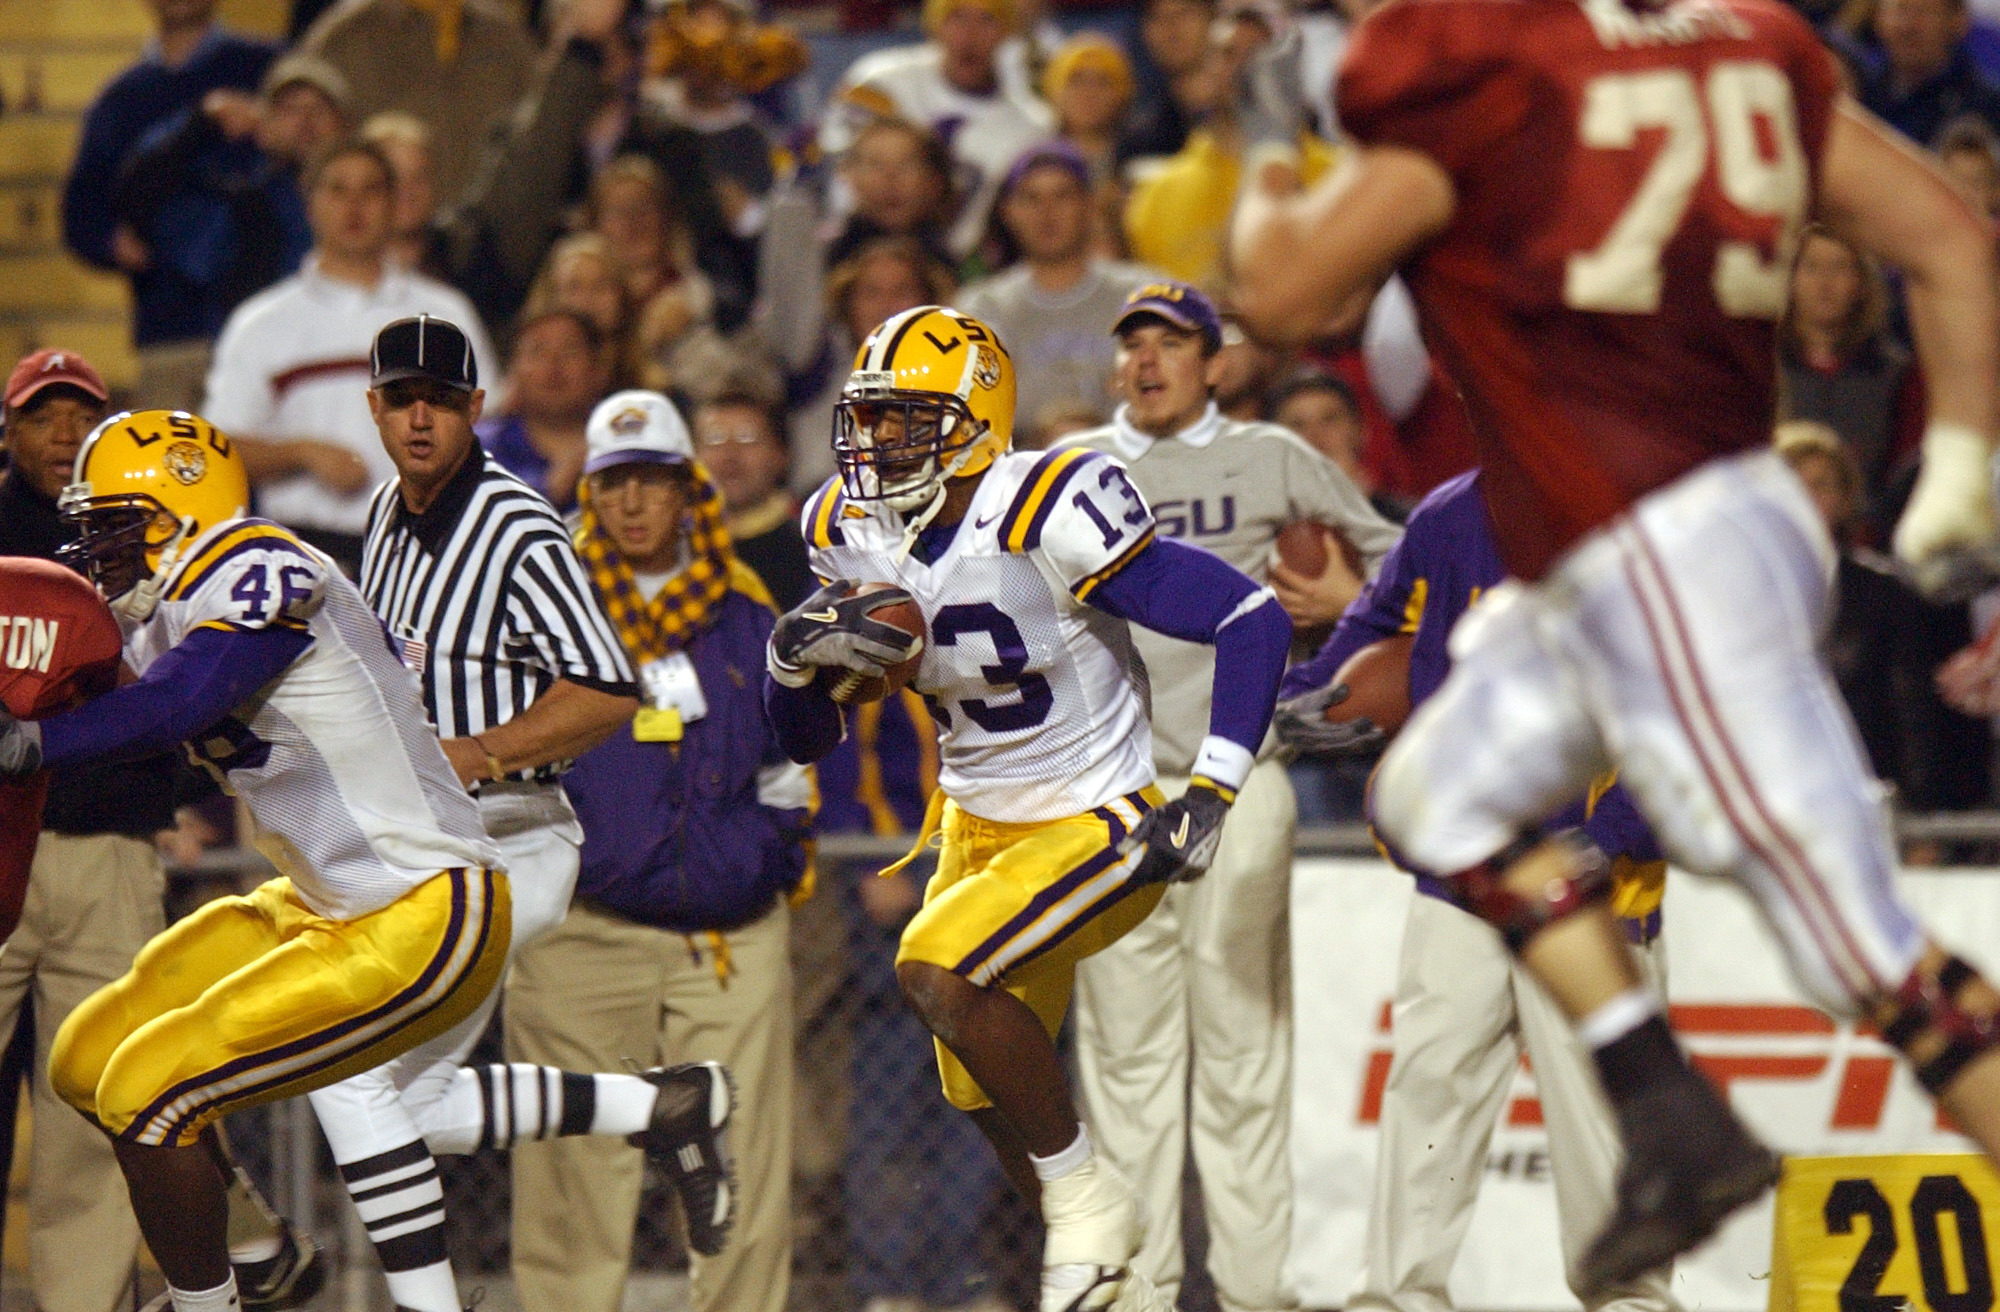 Corey Webster #13 wide receiver of the Louisiana State University Tigers runs the ball upfield